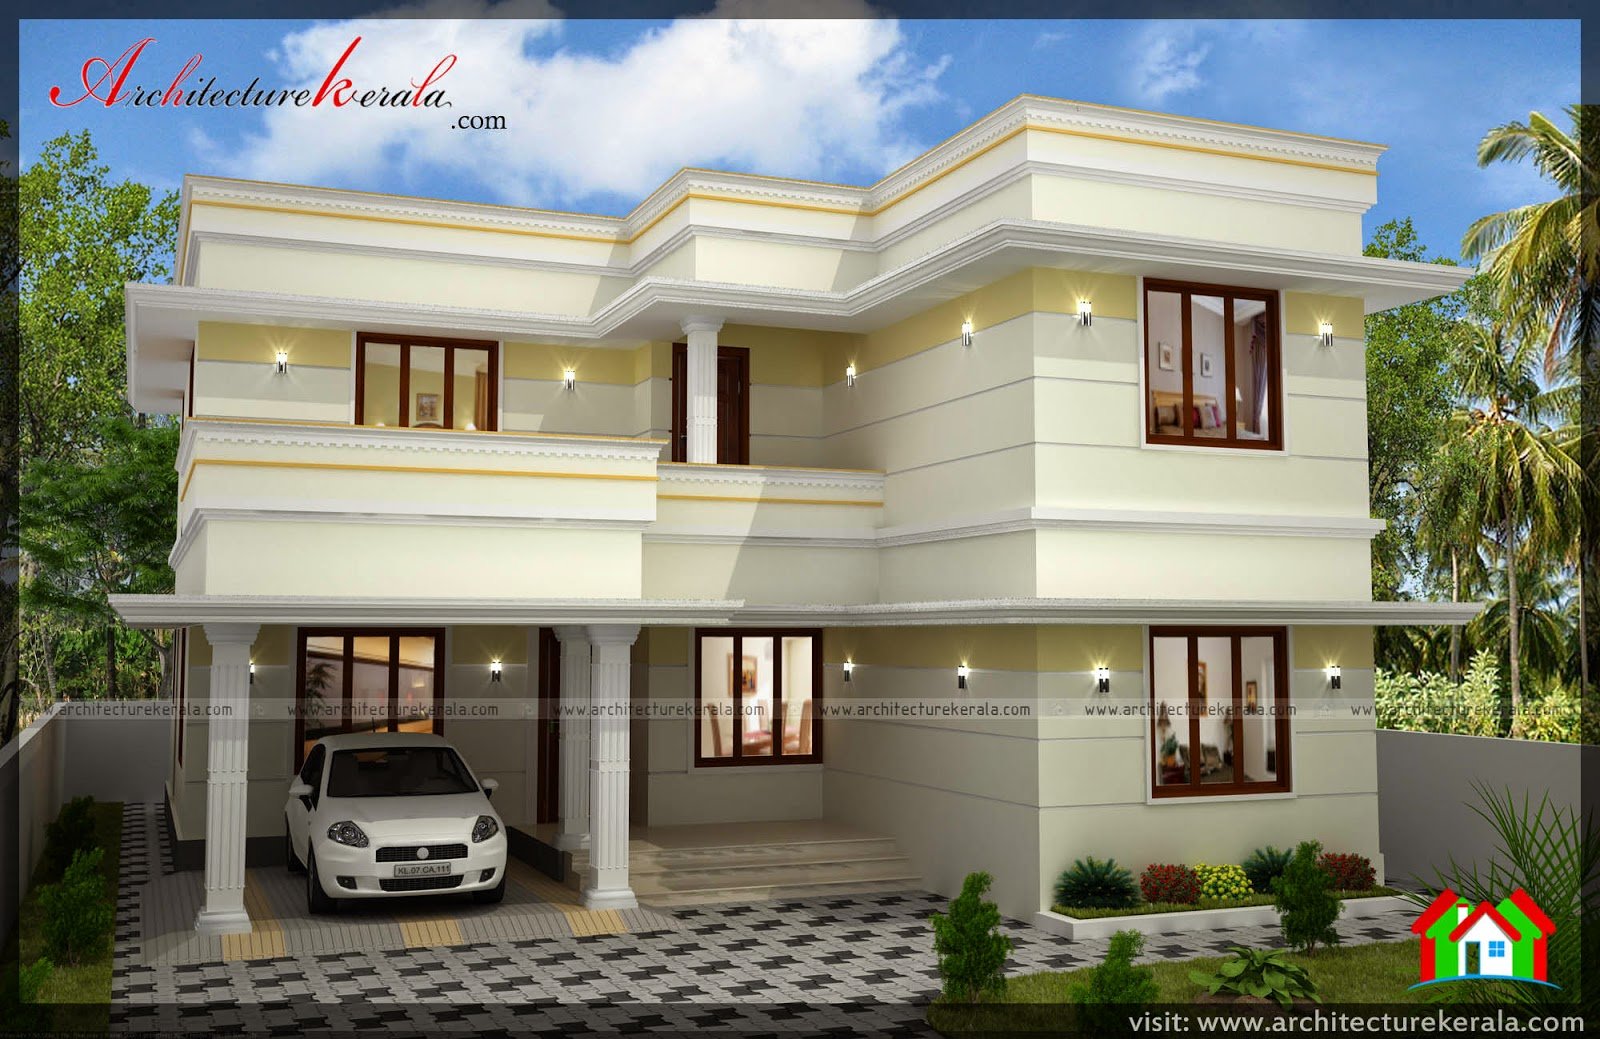 Three bedroom two storey house plan architecture kerala for Small two floor house